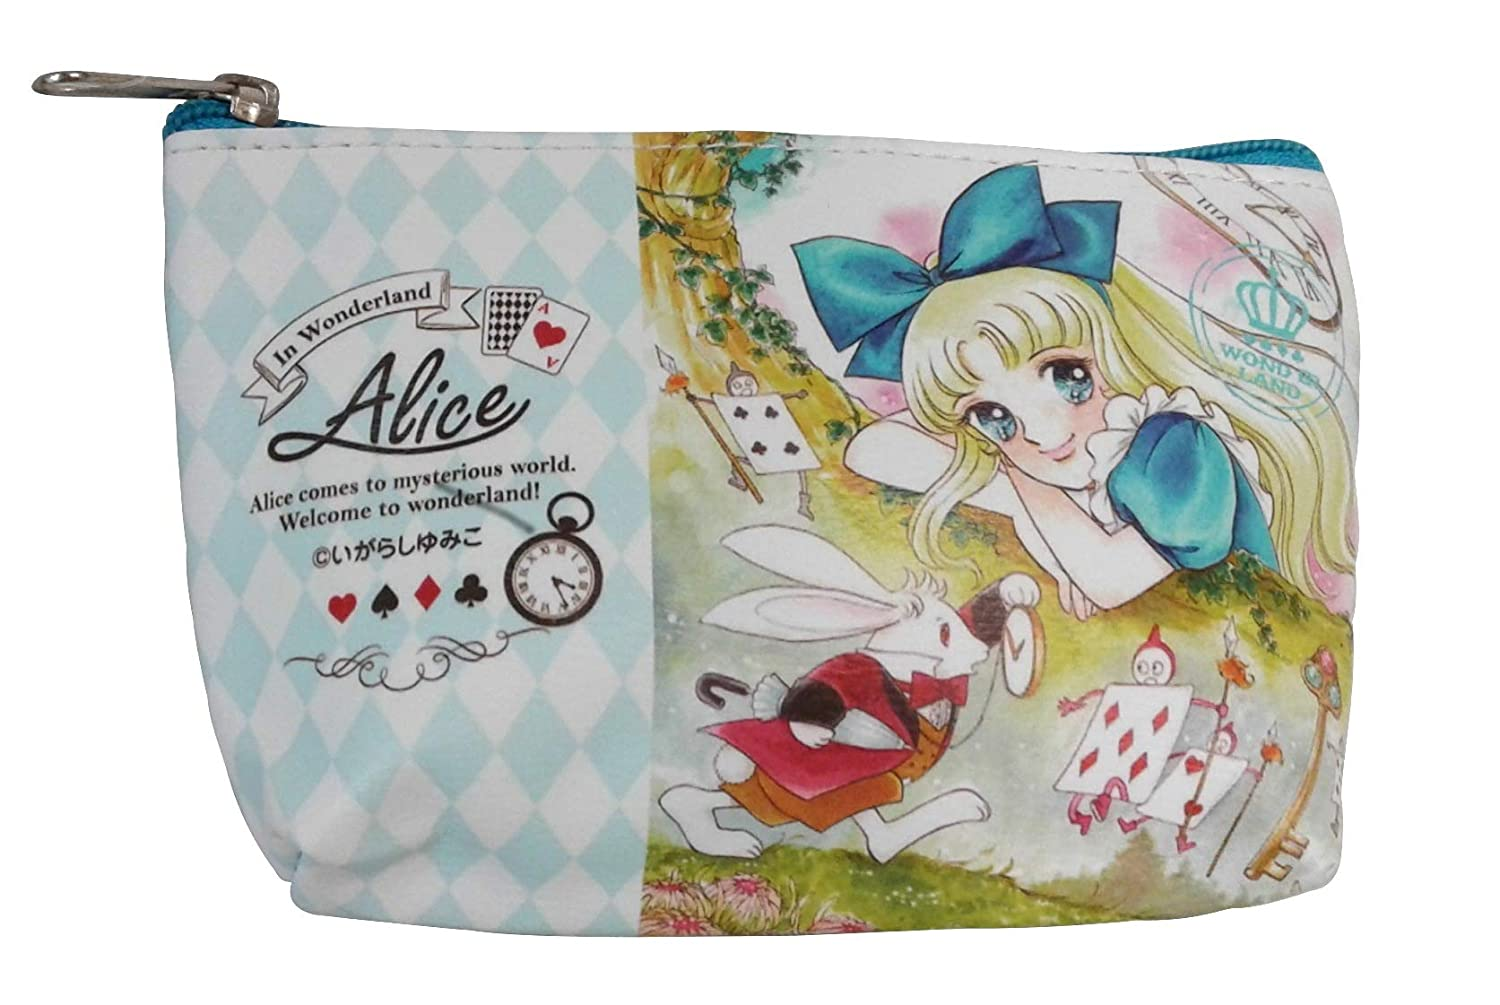 d5b602272621 Amazon.com  GlobalEdge Anime Alice in Wonderland Pouch for Makeup ...